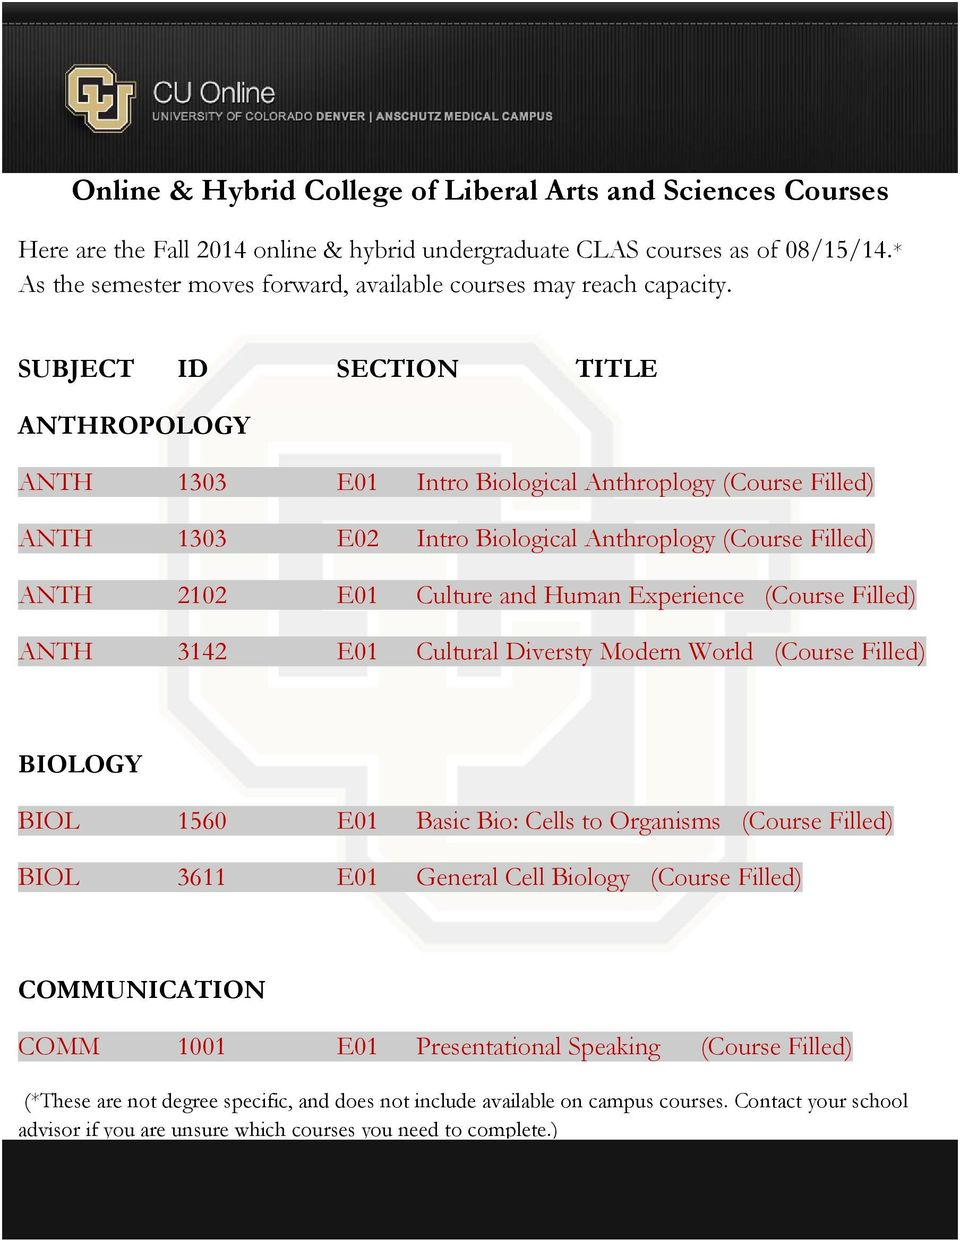 Filled) ANTH 3142 E01 Cultural Diversty Modern World (Course Filled) BIOLOGY BIOL 1560 E01 Basic Bio: Cells to Organisms (Course Filled) BIOL 3611 E01 General Cell Biology (Course Filled)